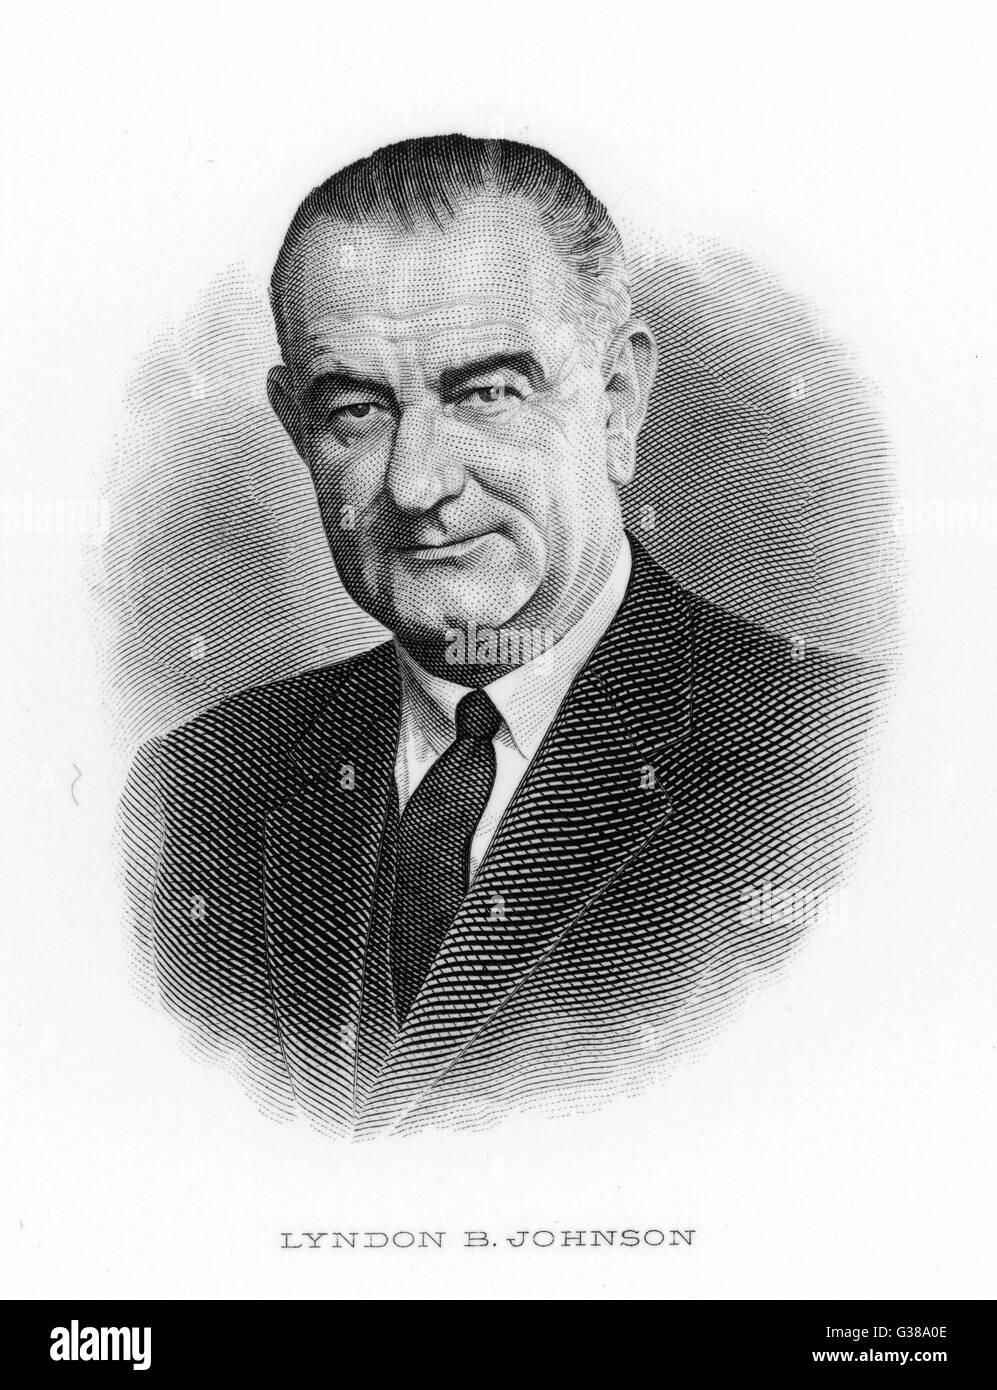 LYNDON B JOHNSON (1908 -1973), US President 1963-68. - Stock Image